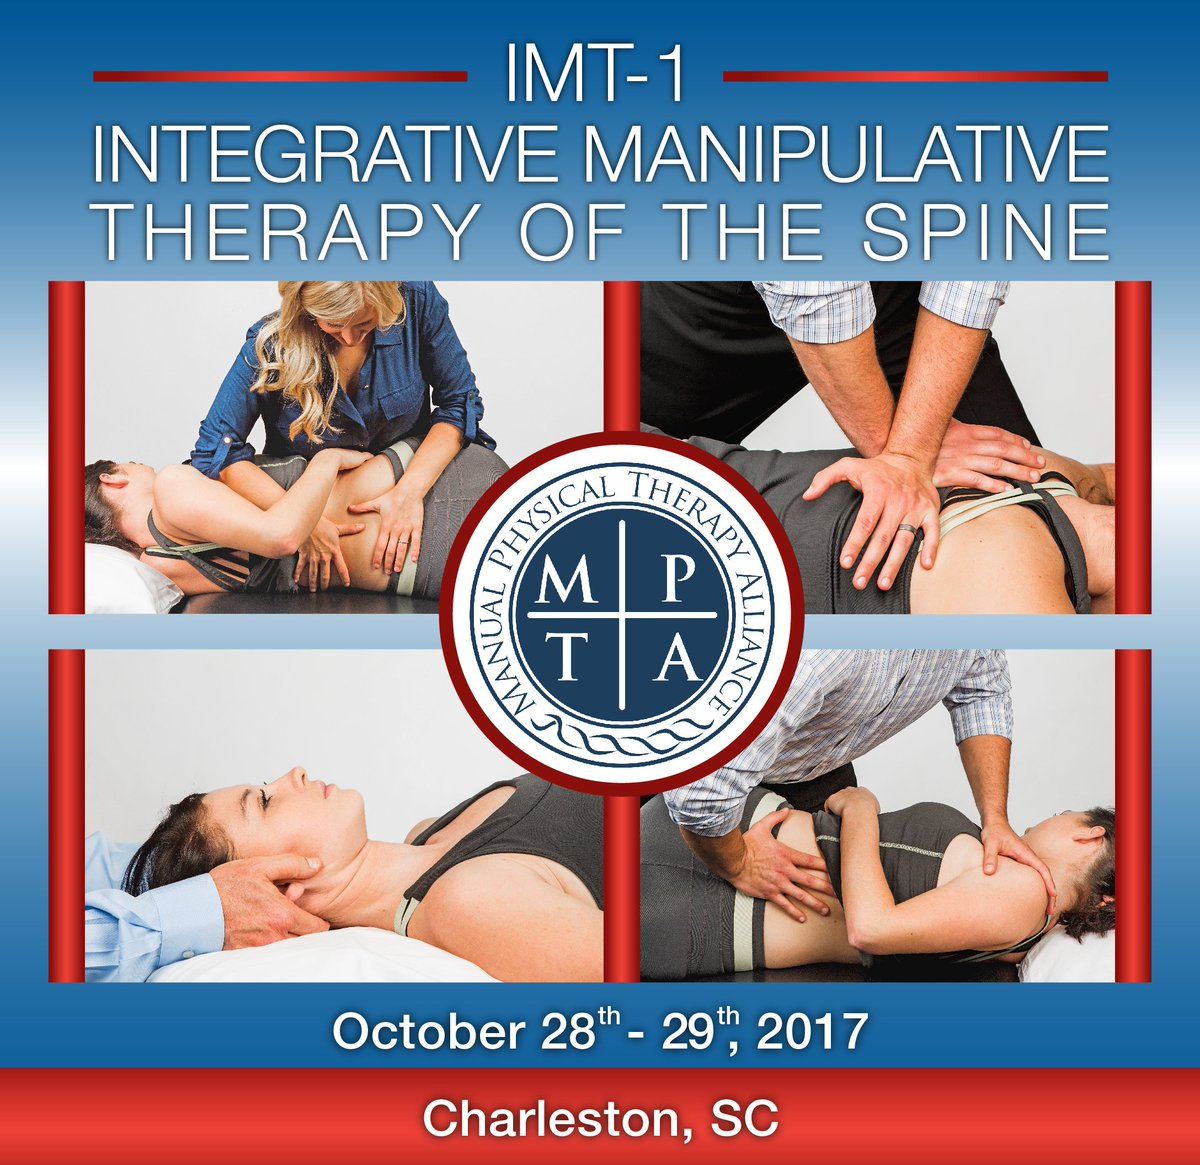 It&#39;s not to late to join @MPTAConEd for IMT-1 #SpinalManipulation Course in #Charleston this Saturday!  PM for more info! #PhysicalTherapy<br>http://pic.twitter.com/WYX5K9UyLM